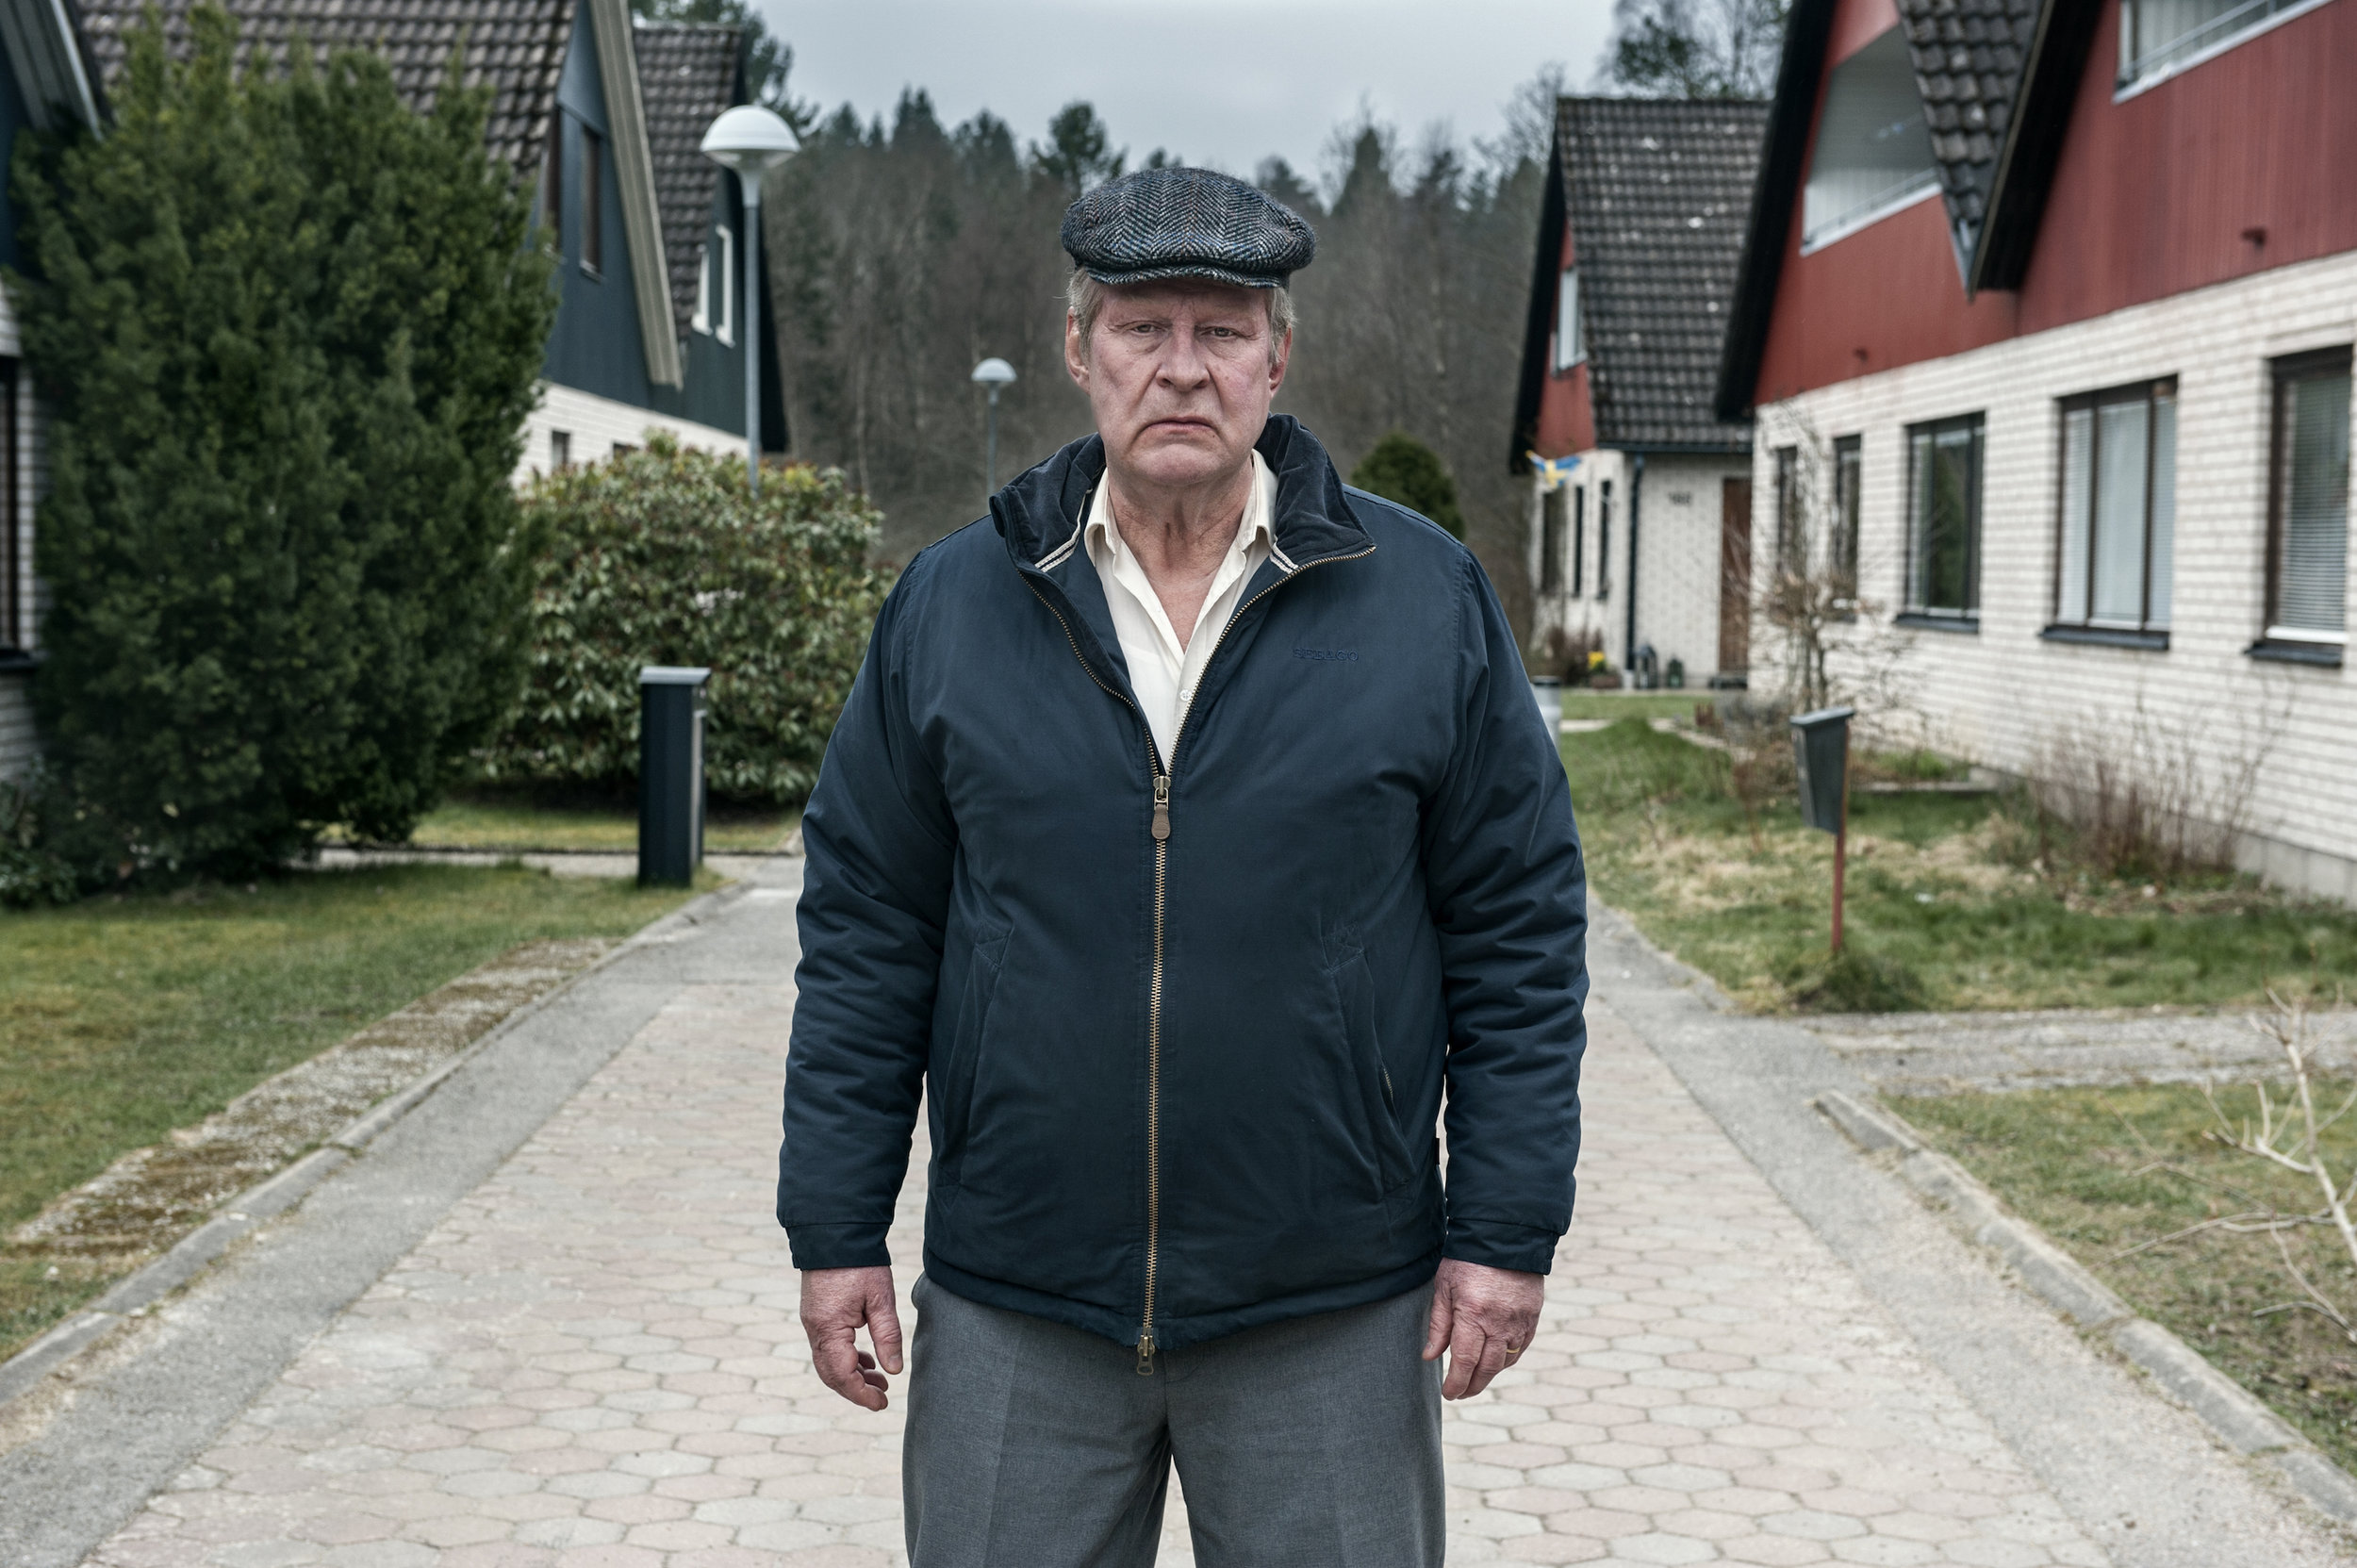 A bitter Ove (Rolf Lassgård) stands in the middle of the gated community pathway where cars are prohibited.